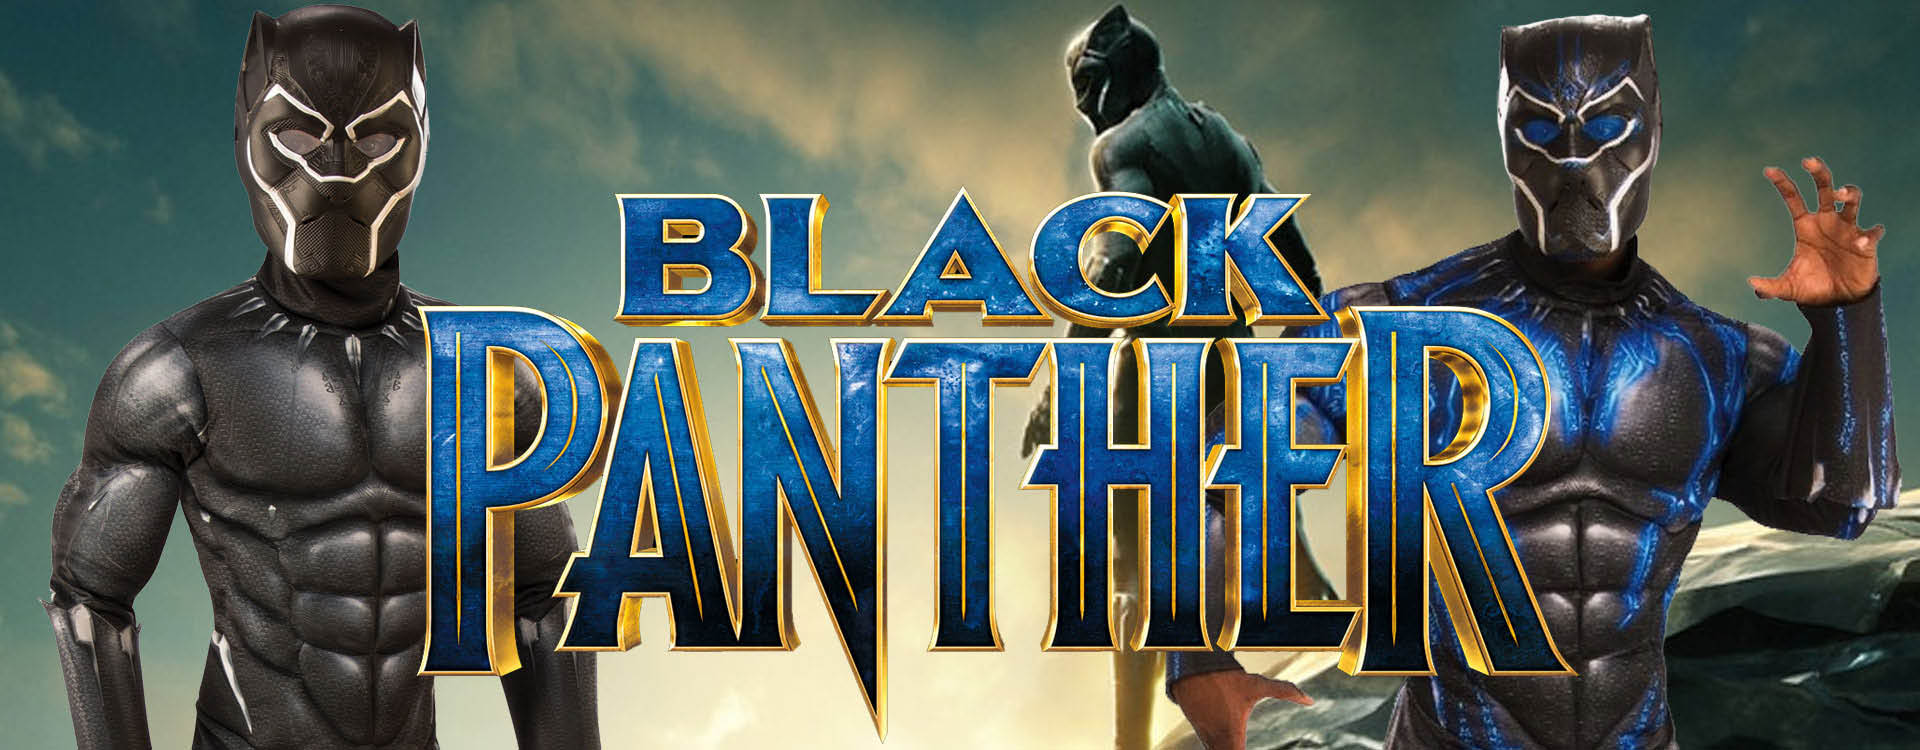 black panther costumes near me black panther costume coupon halloween costume coupons